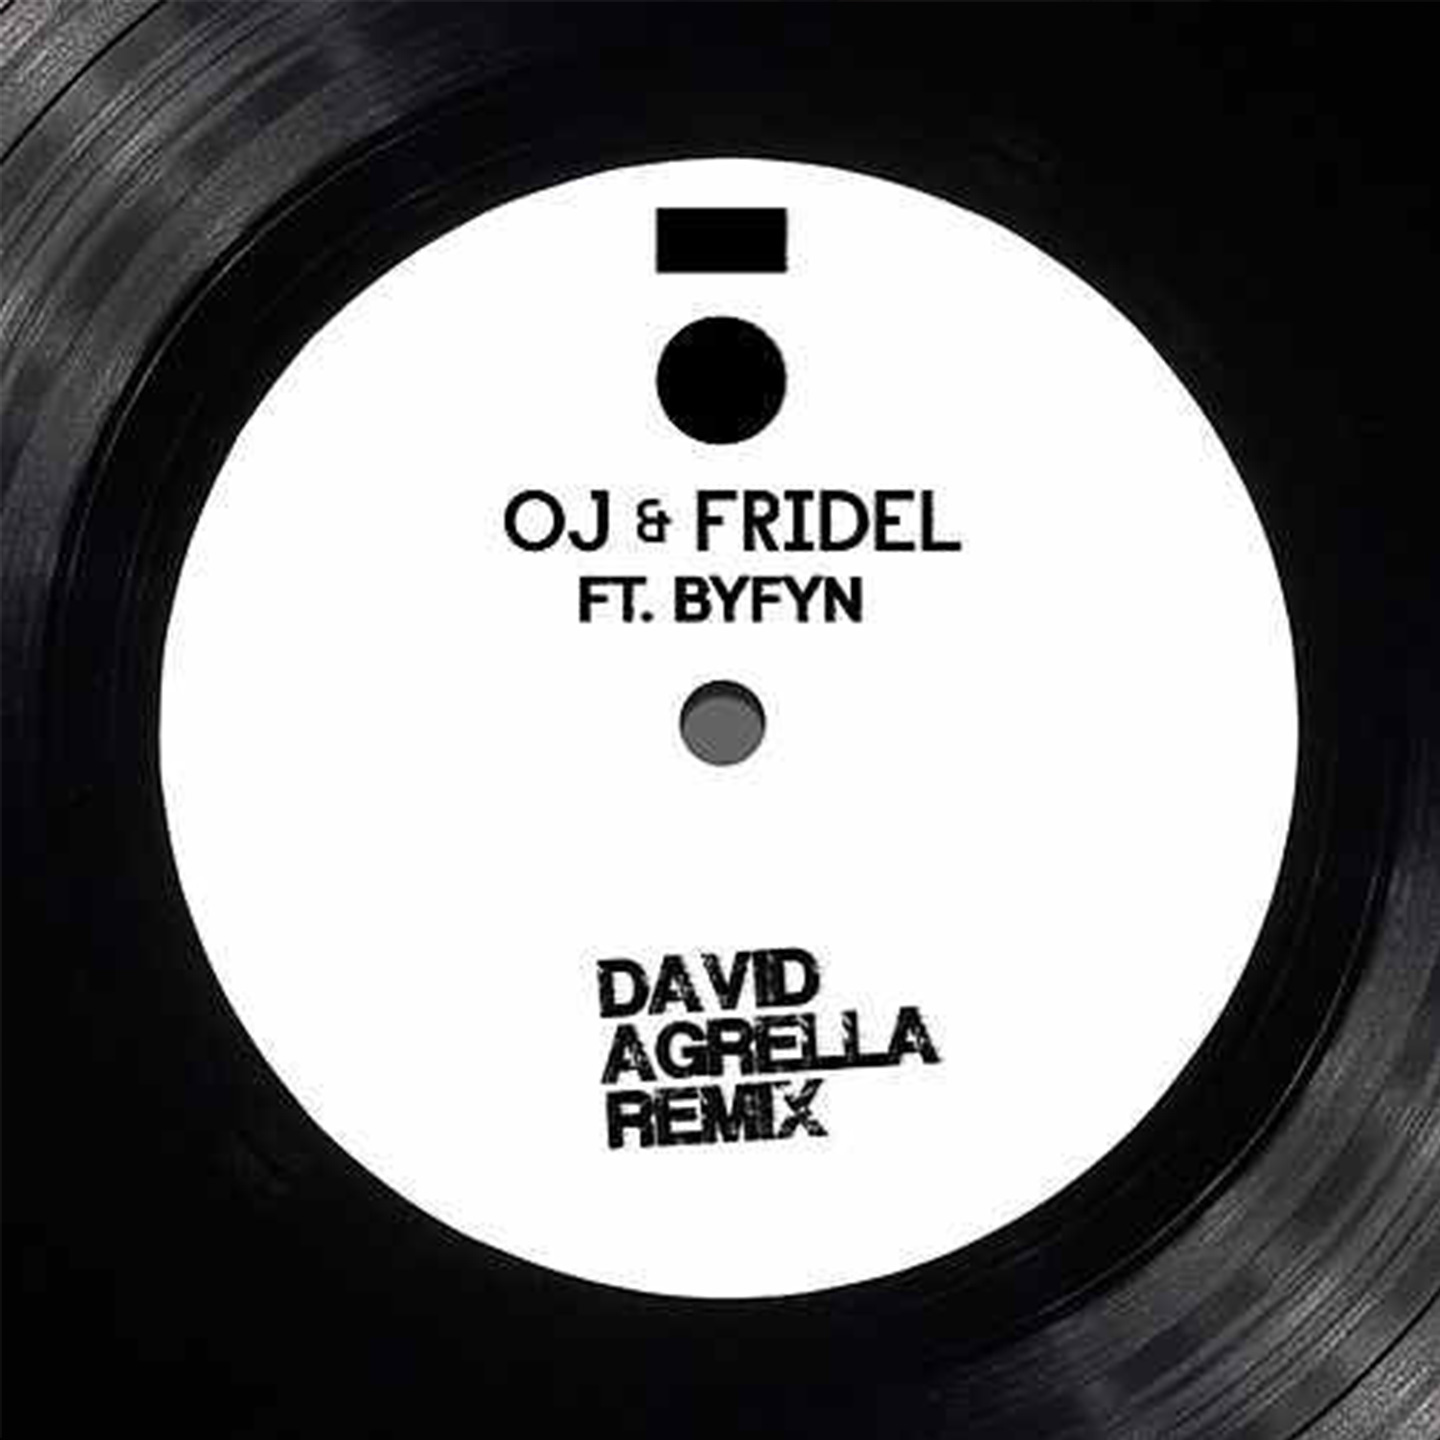 Feel My Love (David Agrella Remix)